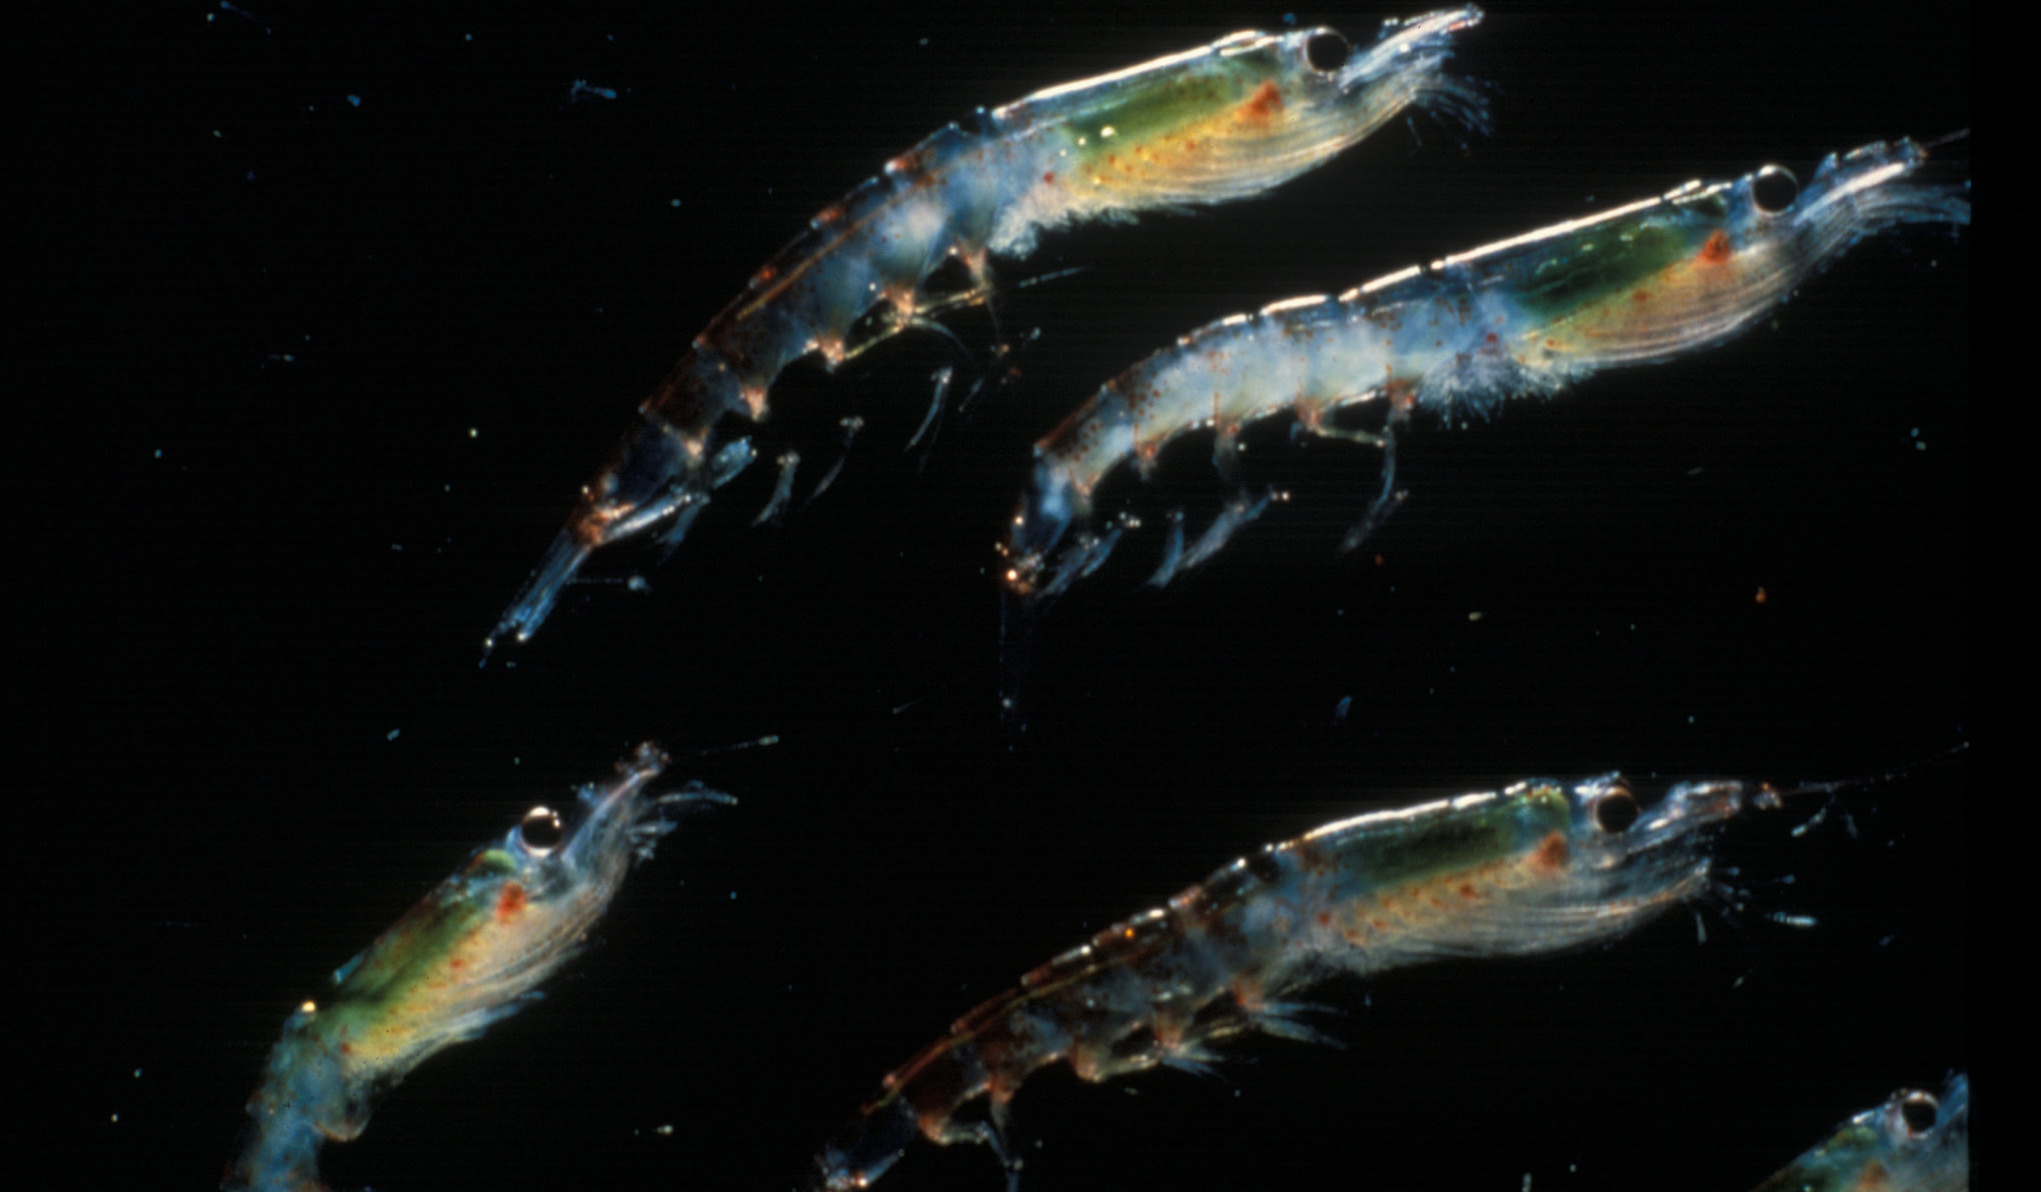 Euphausia superba, or the Antarctic krill (Photo: US National Oceanic and Atmospheric Administration/Flickr)